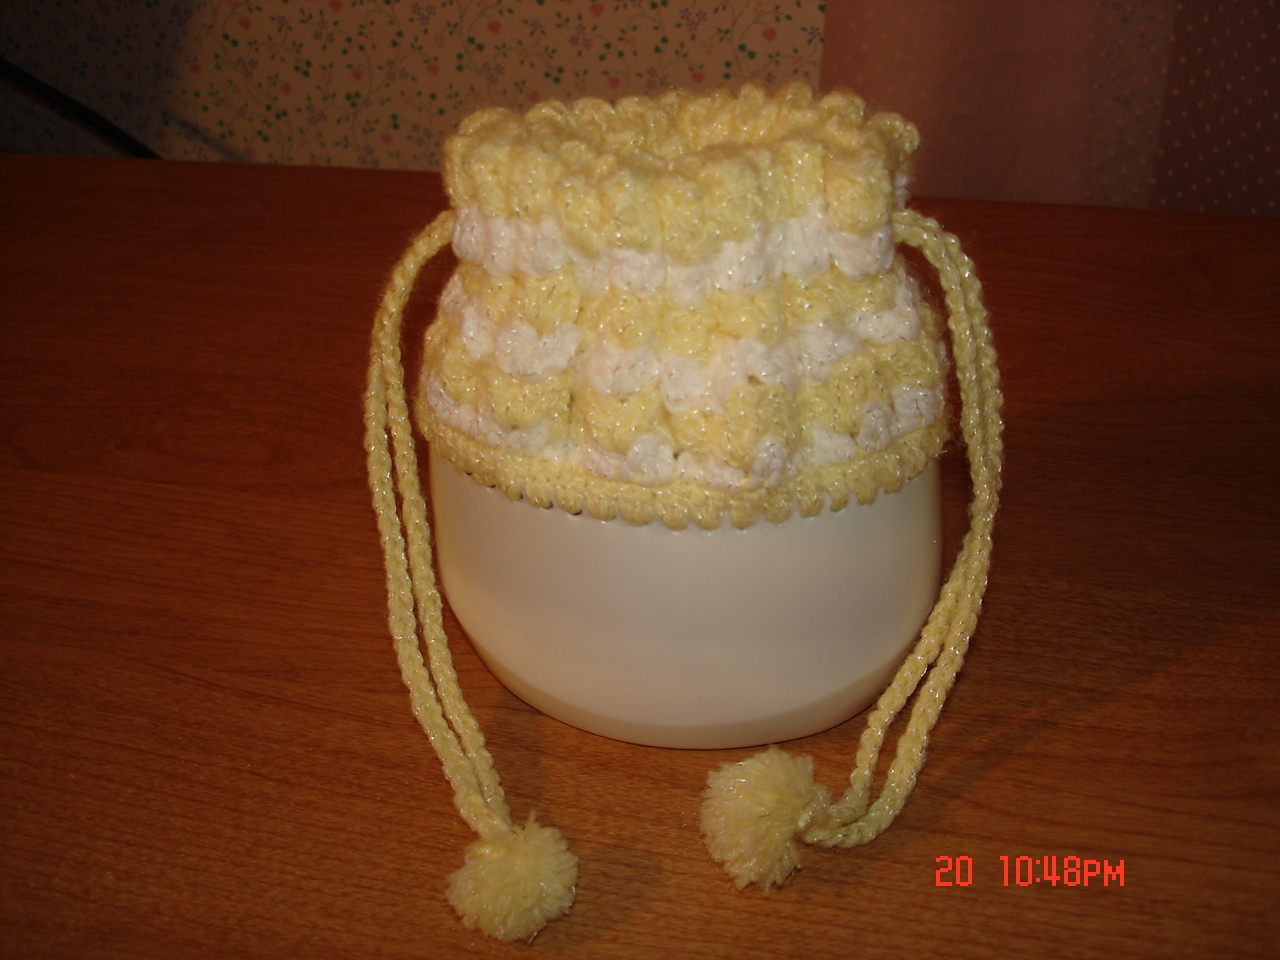 Crochet Baby Purse : One day they came home from their visit and they both had one of these ...